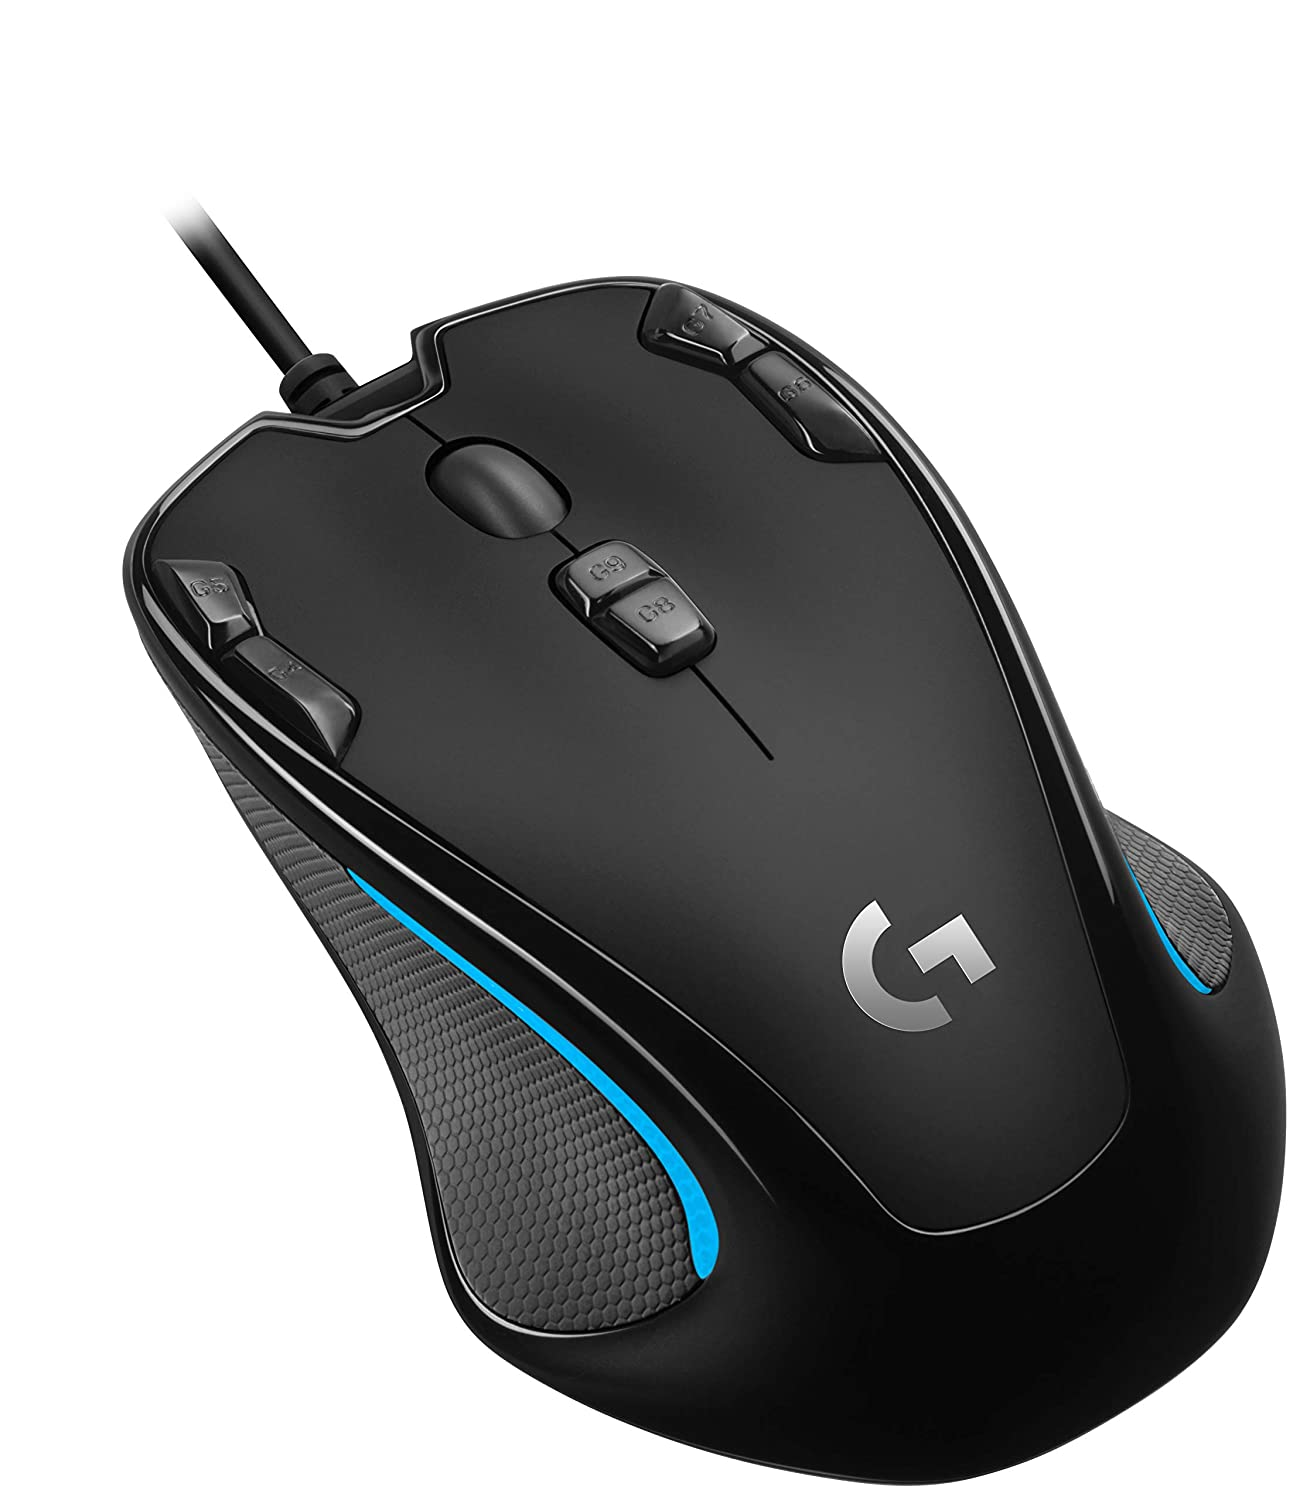 Logitech G300s Optical Ambidextrous Gaming Mouse 9 Programmable Buttons, Onboard Memory